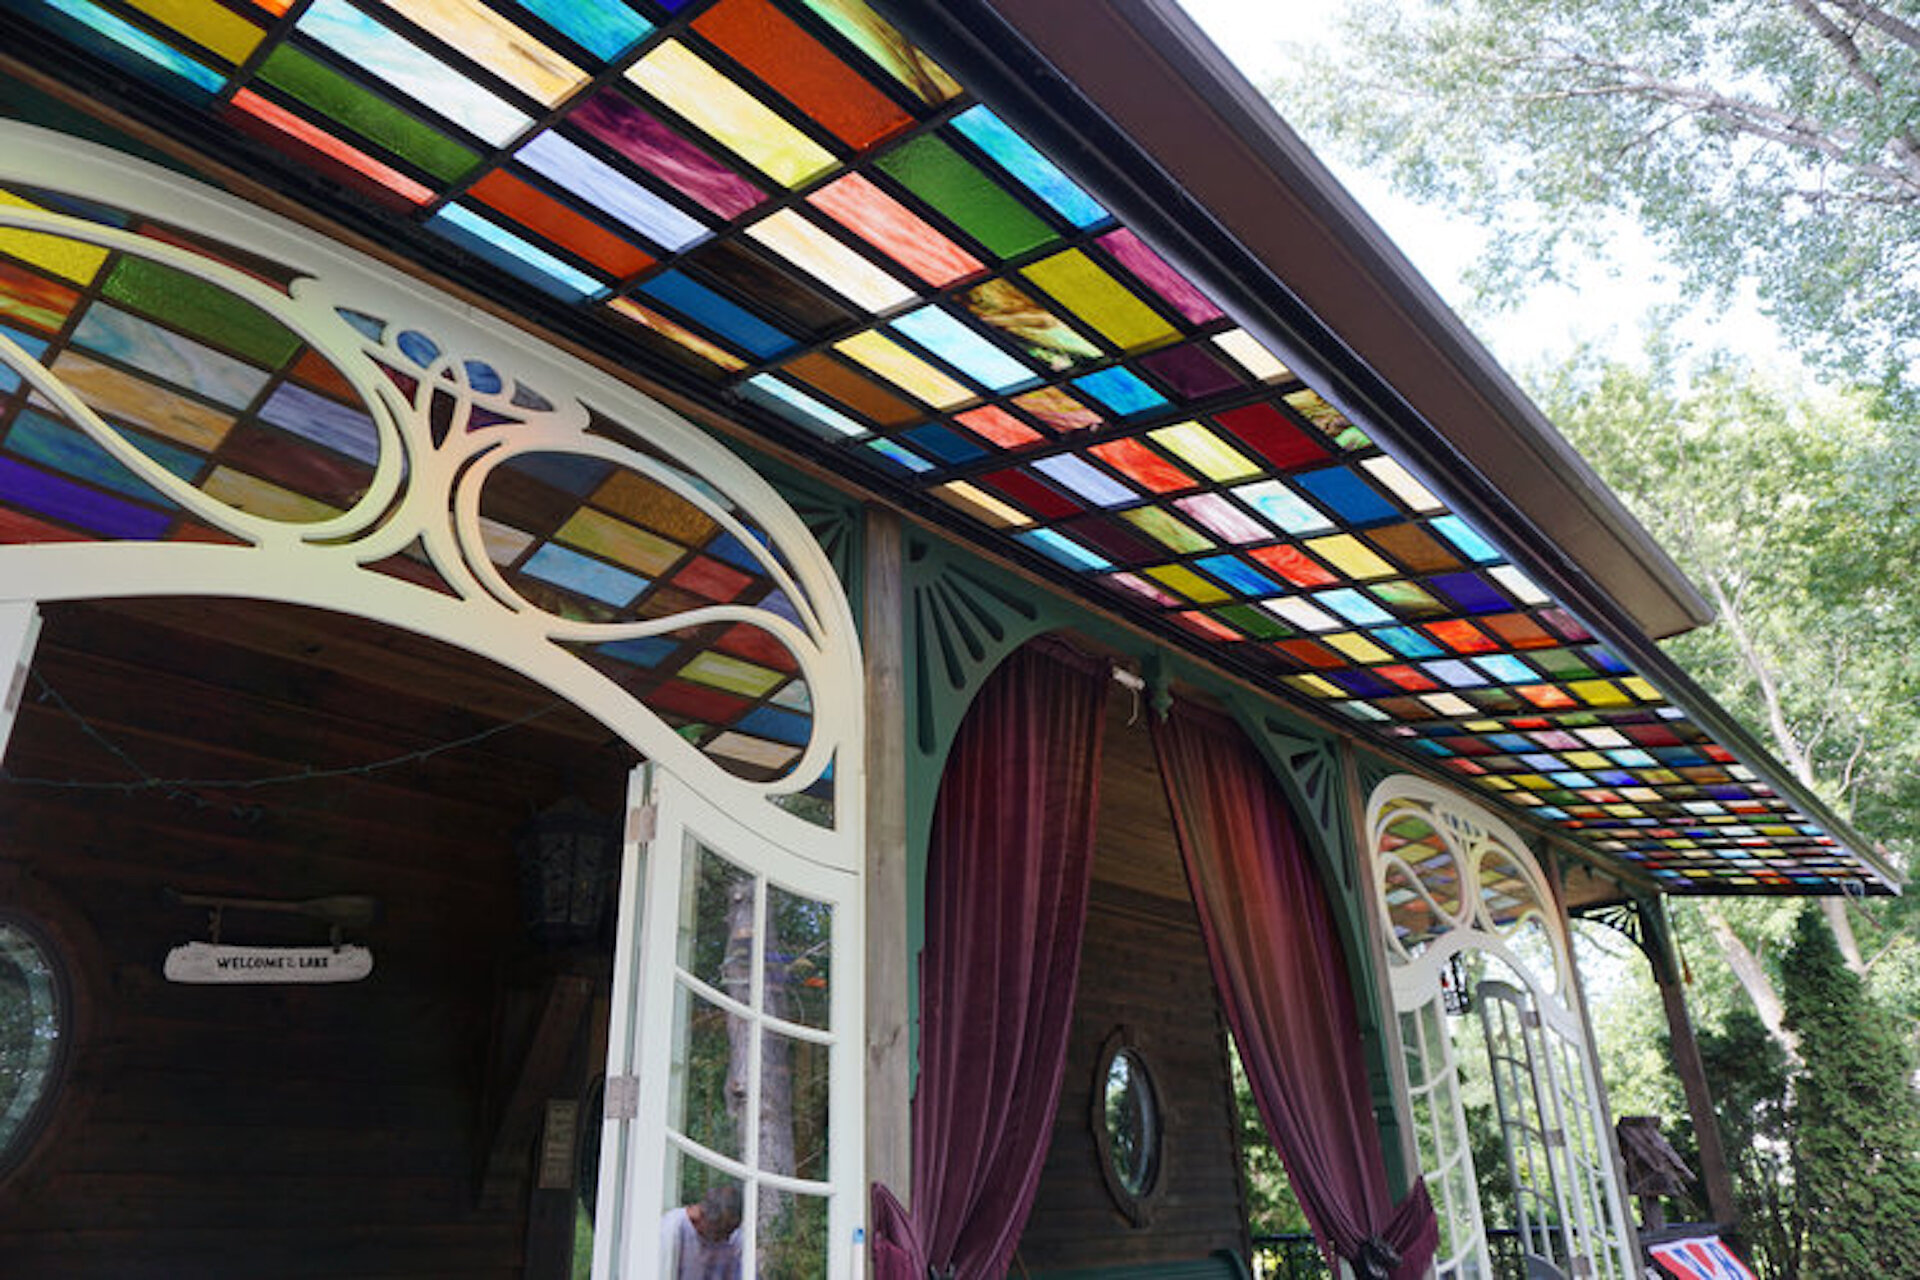 ADELINE'S HOUSE OF COOL , WISCONSIN, 45FT X 5FT STEEL STAINED GLASS AWNING